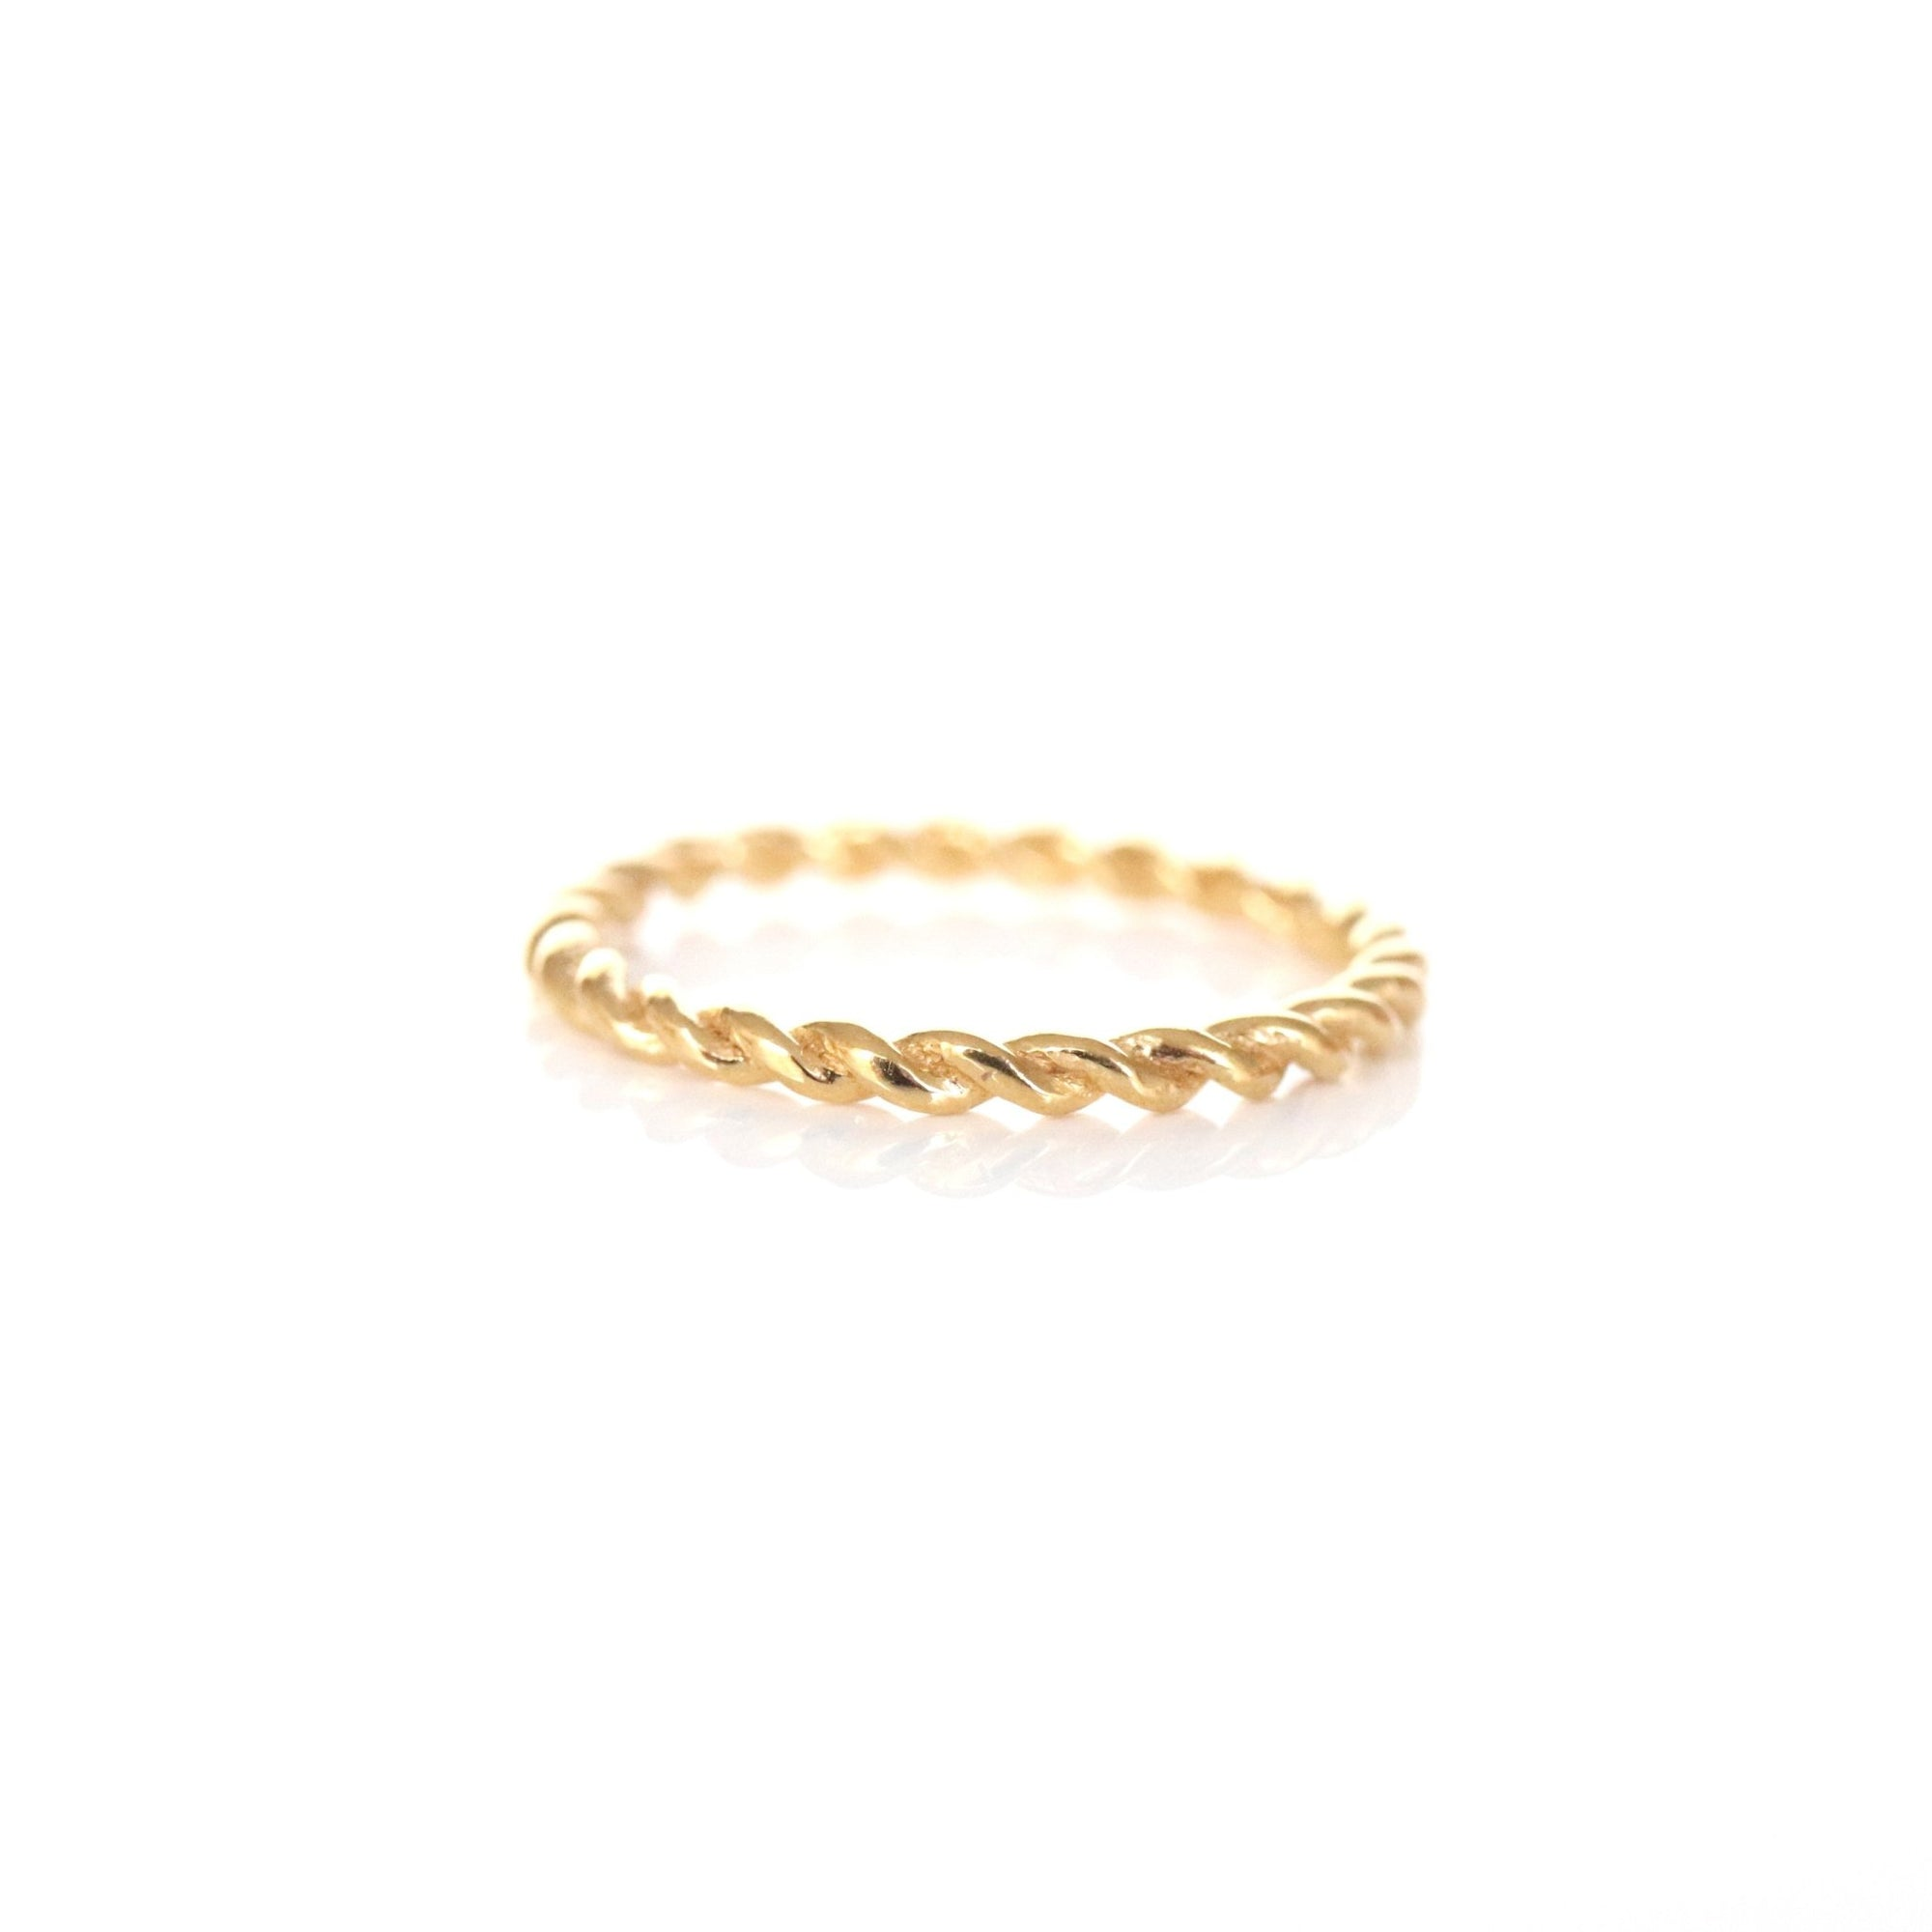 POISE THIN CABLE LINK BAND RING - GOLD - SO PRETTY CARA COTTER